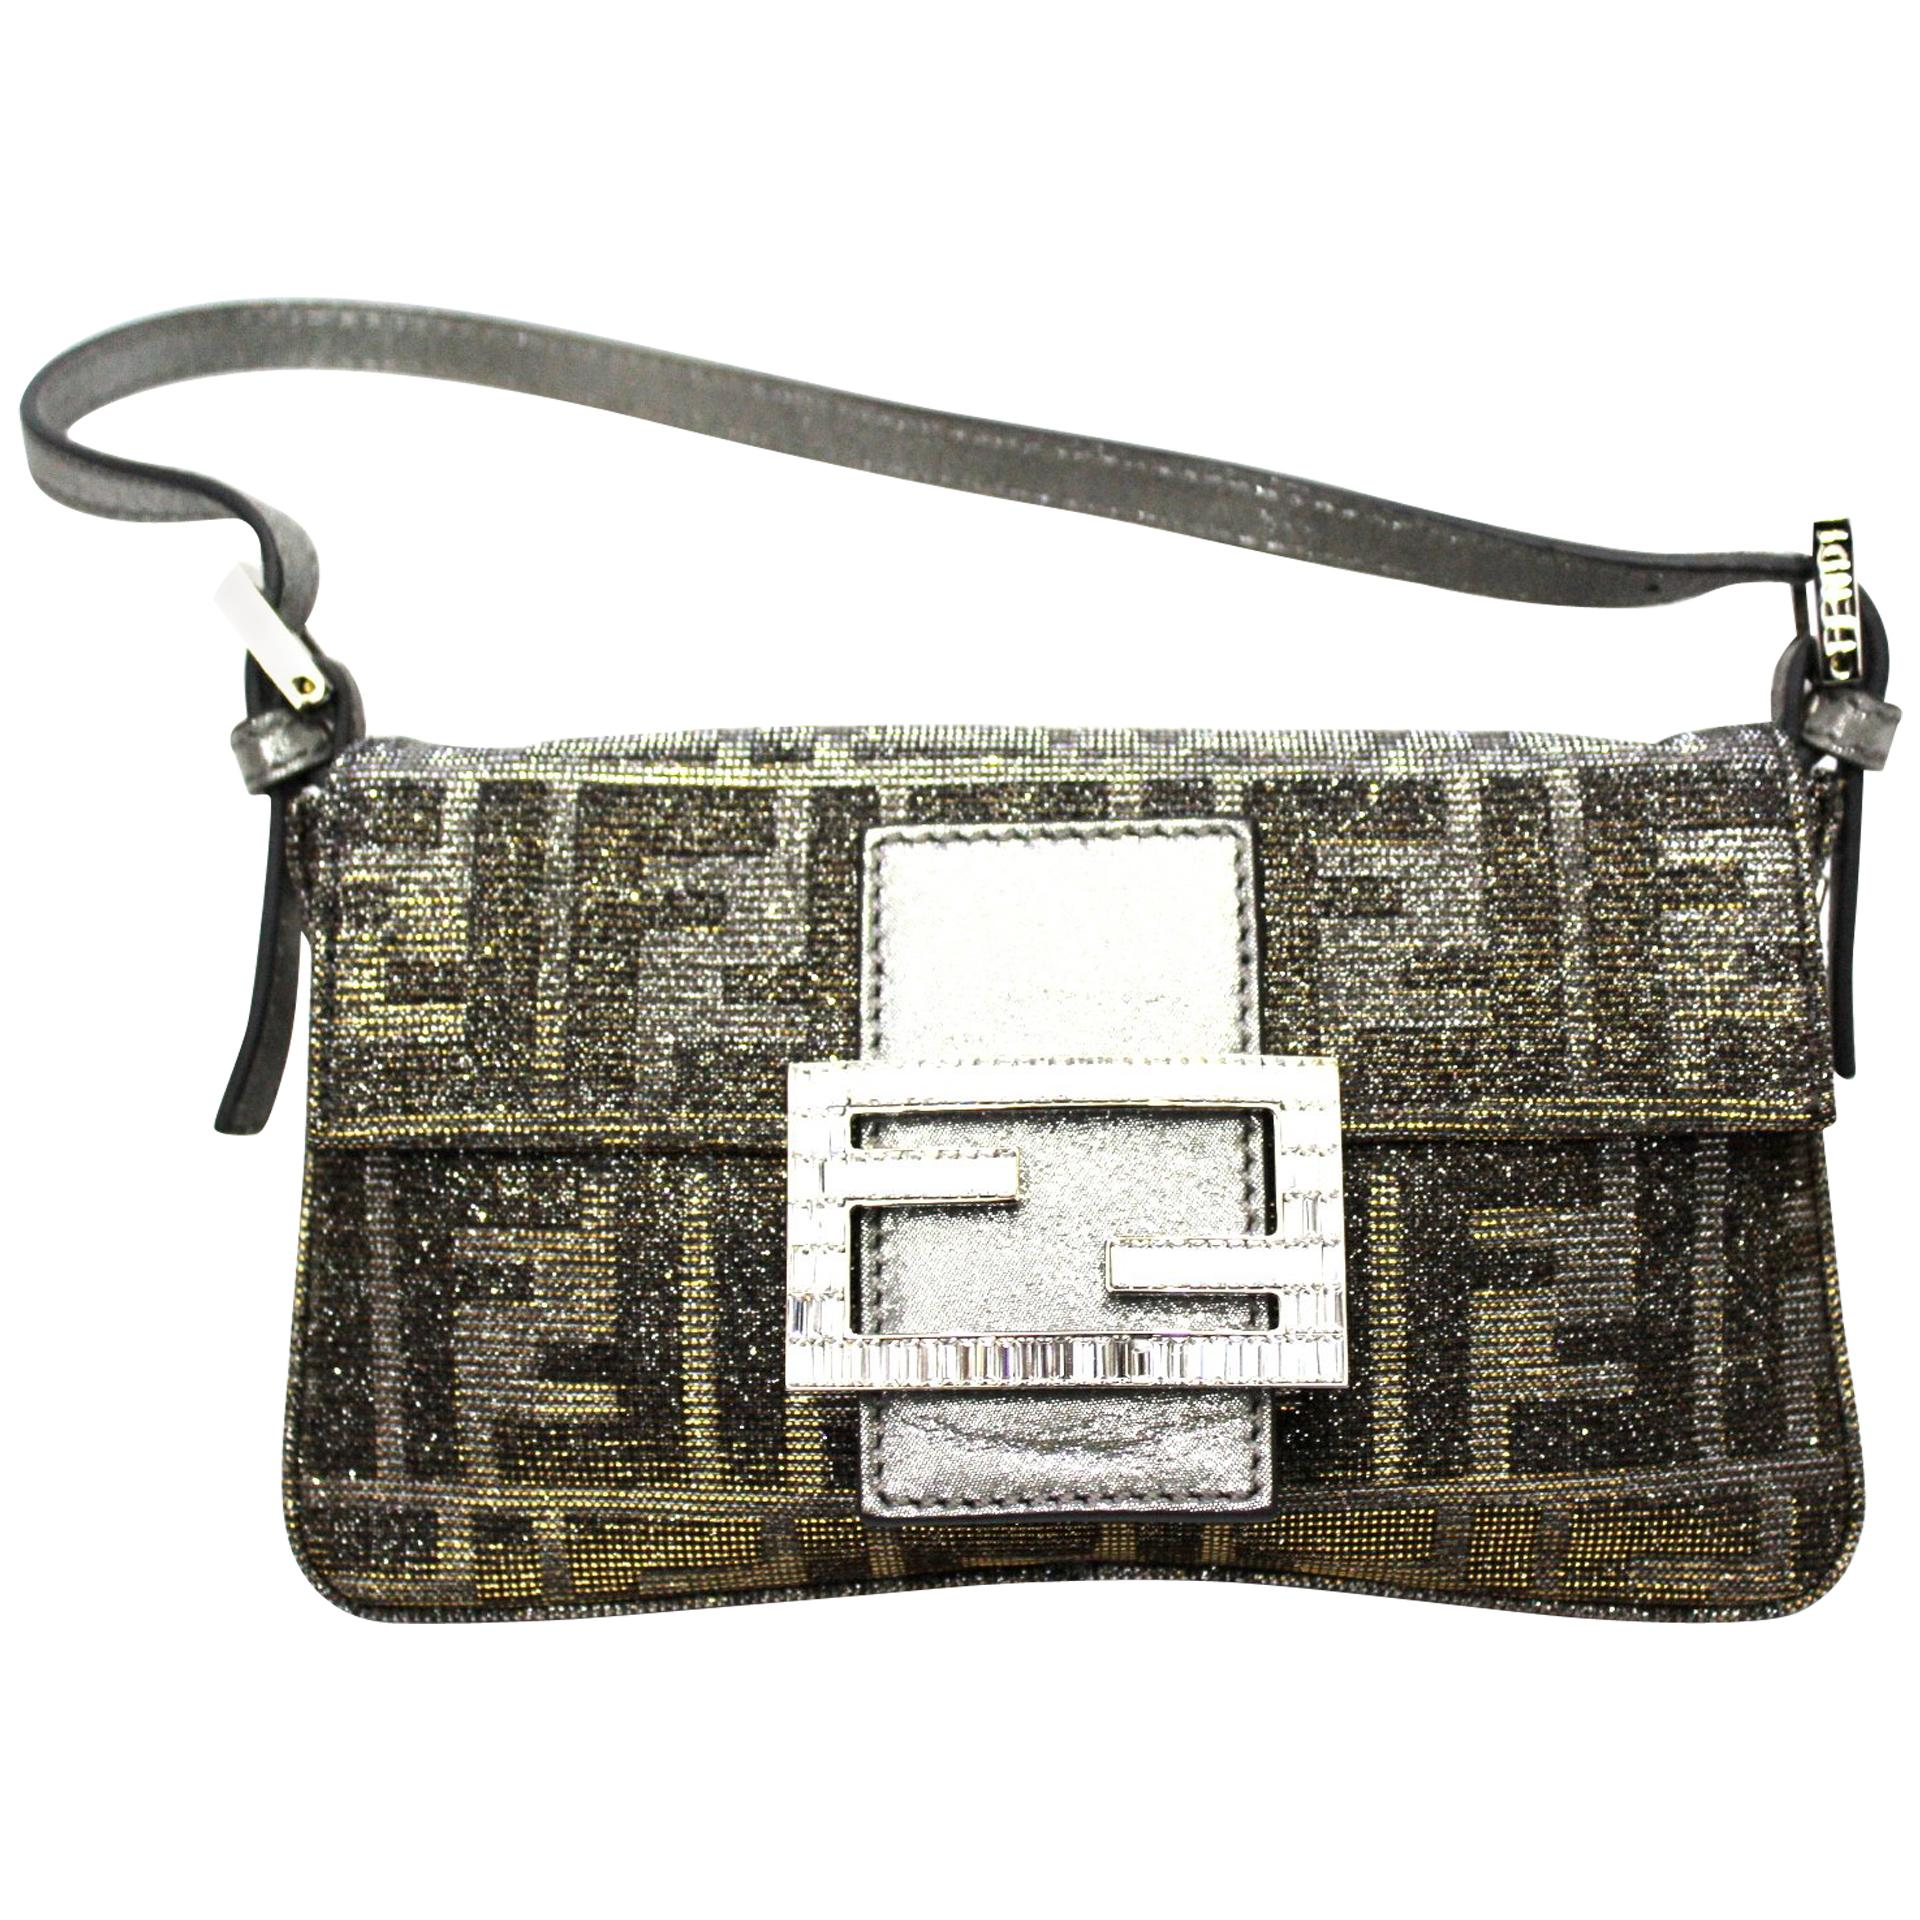 da1da1c281c8 Vintage Fendi Handbags and Purses - 1